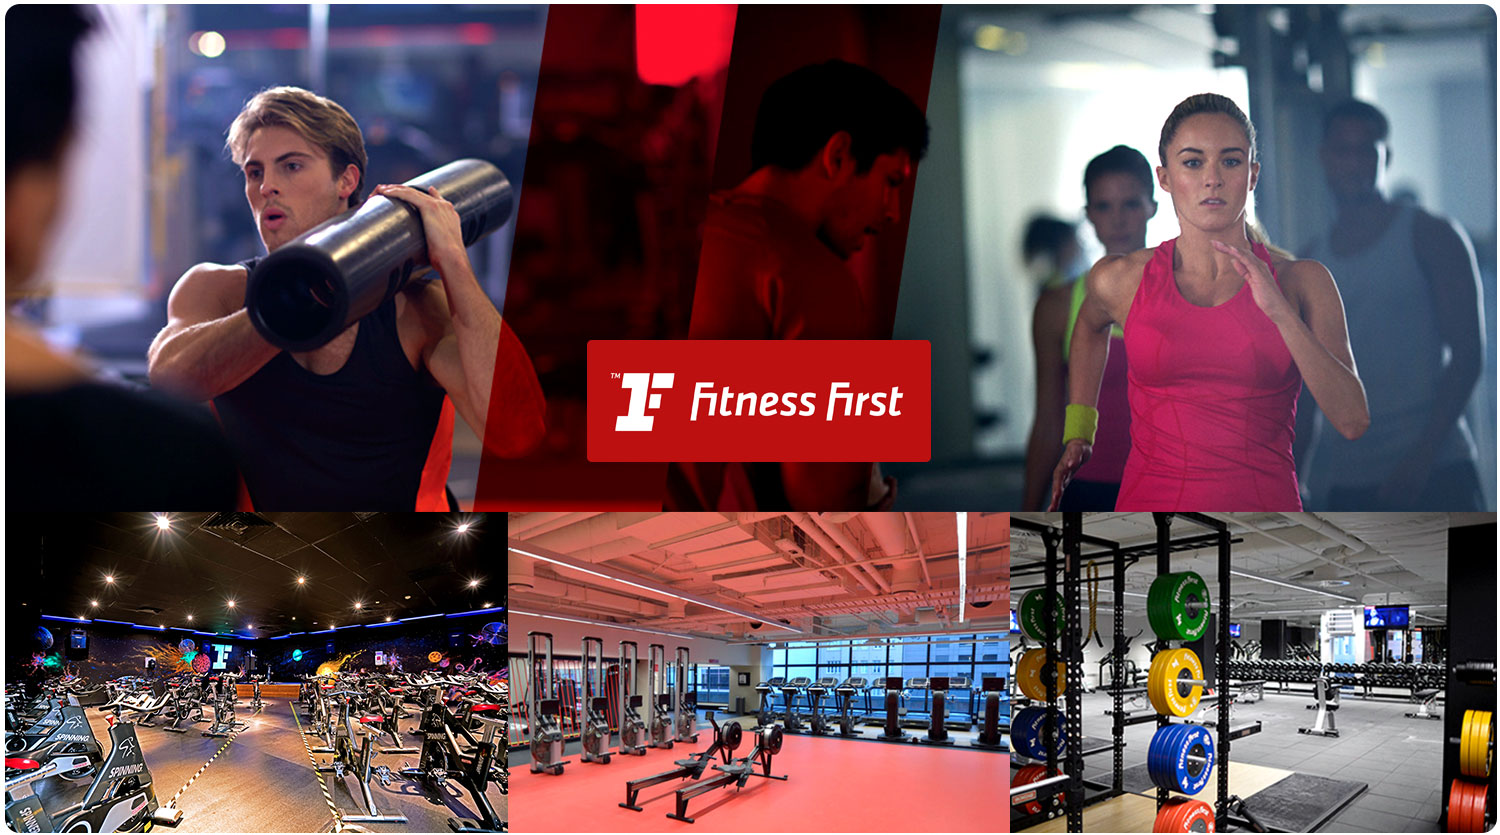 Start your Fitness Journey with Fitness First with only $9.95 for 1 week at Fitness First St Kilda. Experience our first class gym and freestyle classes inc. Yoga, Pilates, Cycle, HIIT, Les Mills and more. Take the first step with Fitness First St Kilda.